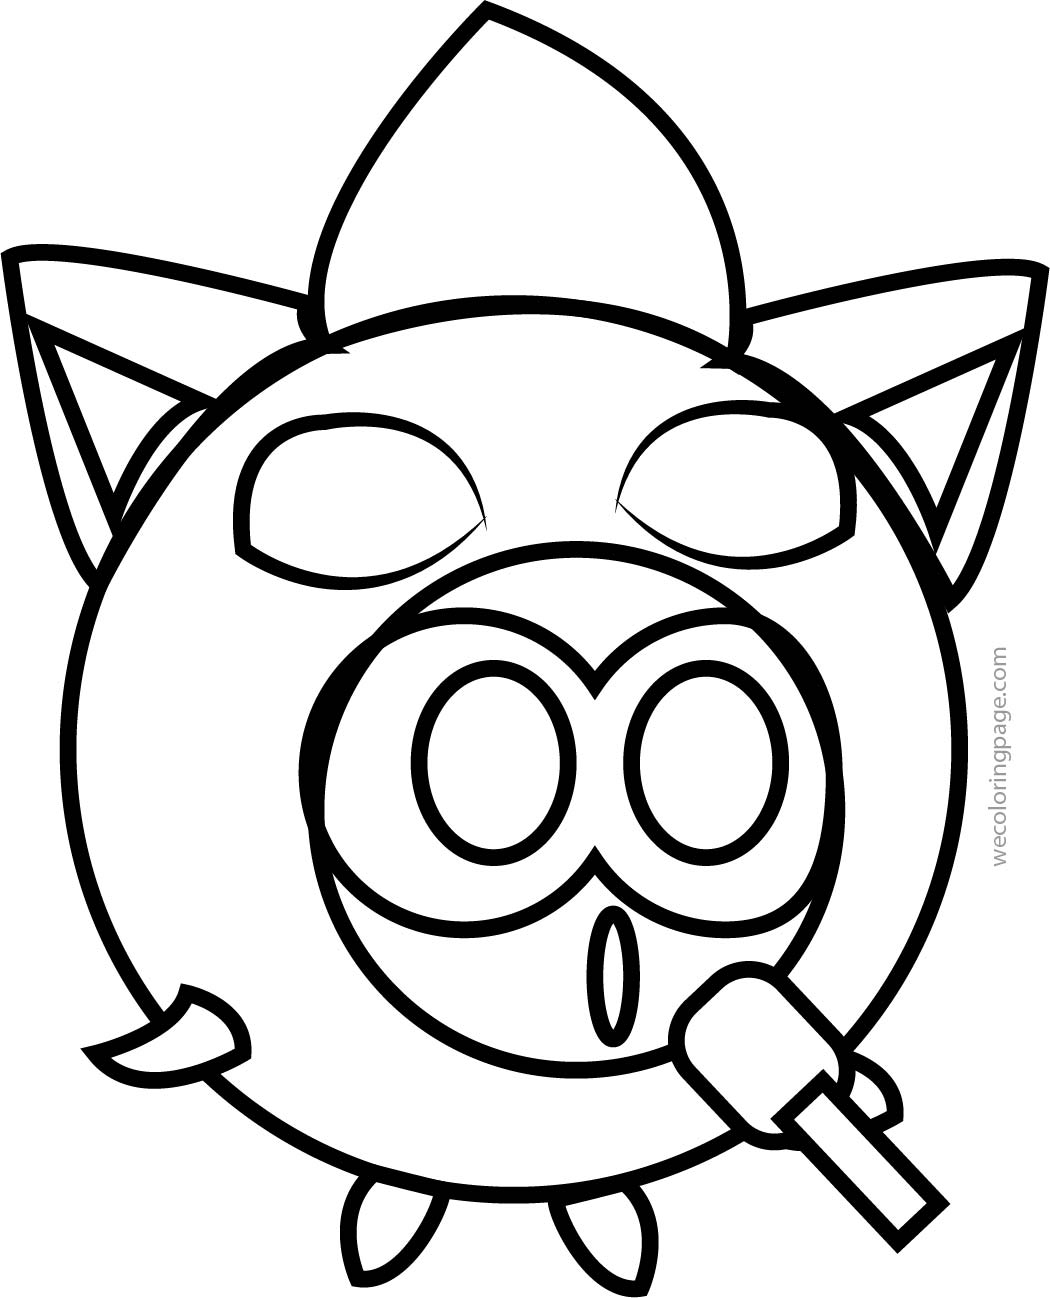 Minion Pikachu Pokemon Circle Coloring Page